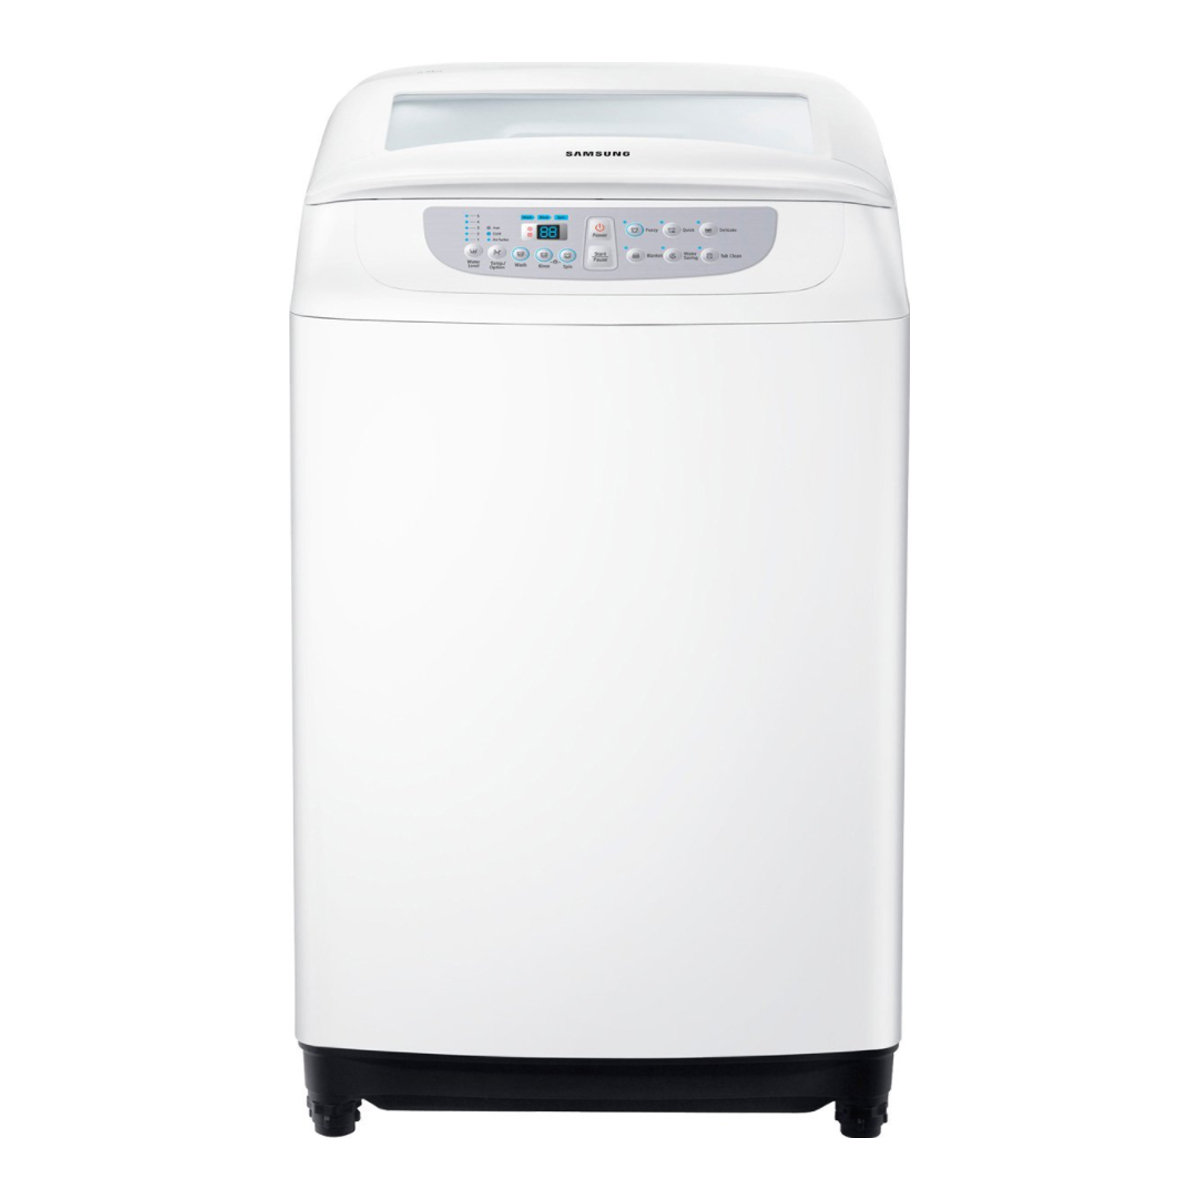 Samsung WA65F5S2URW 6.5kg Top Load Washing Machine